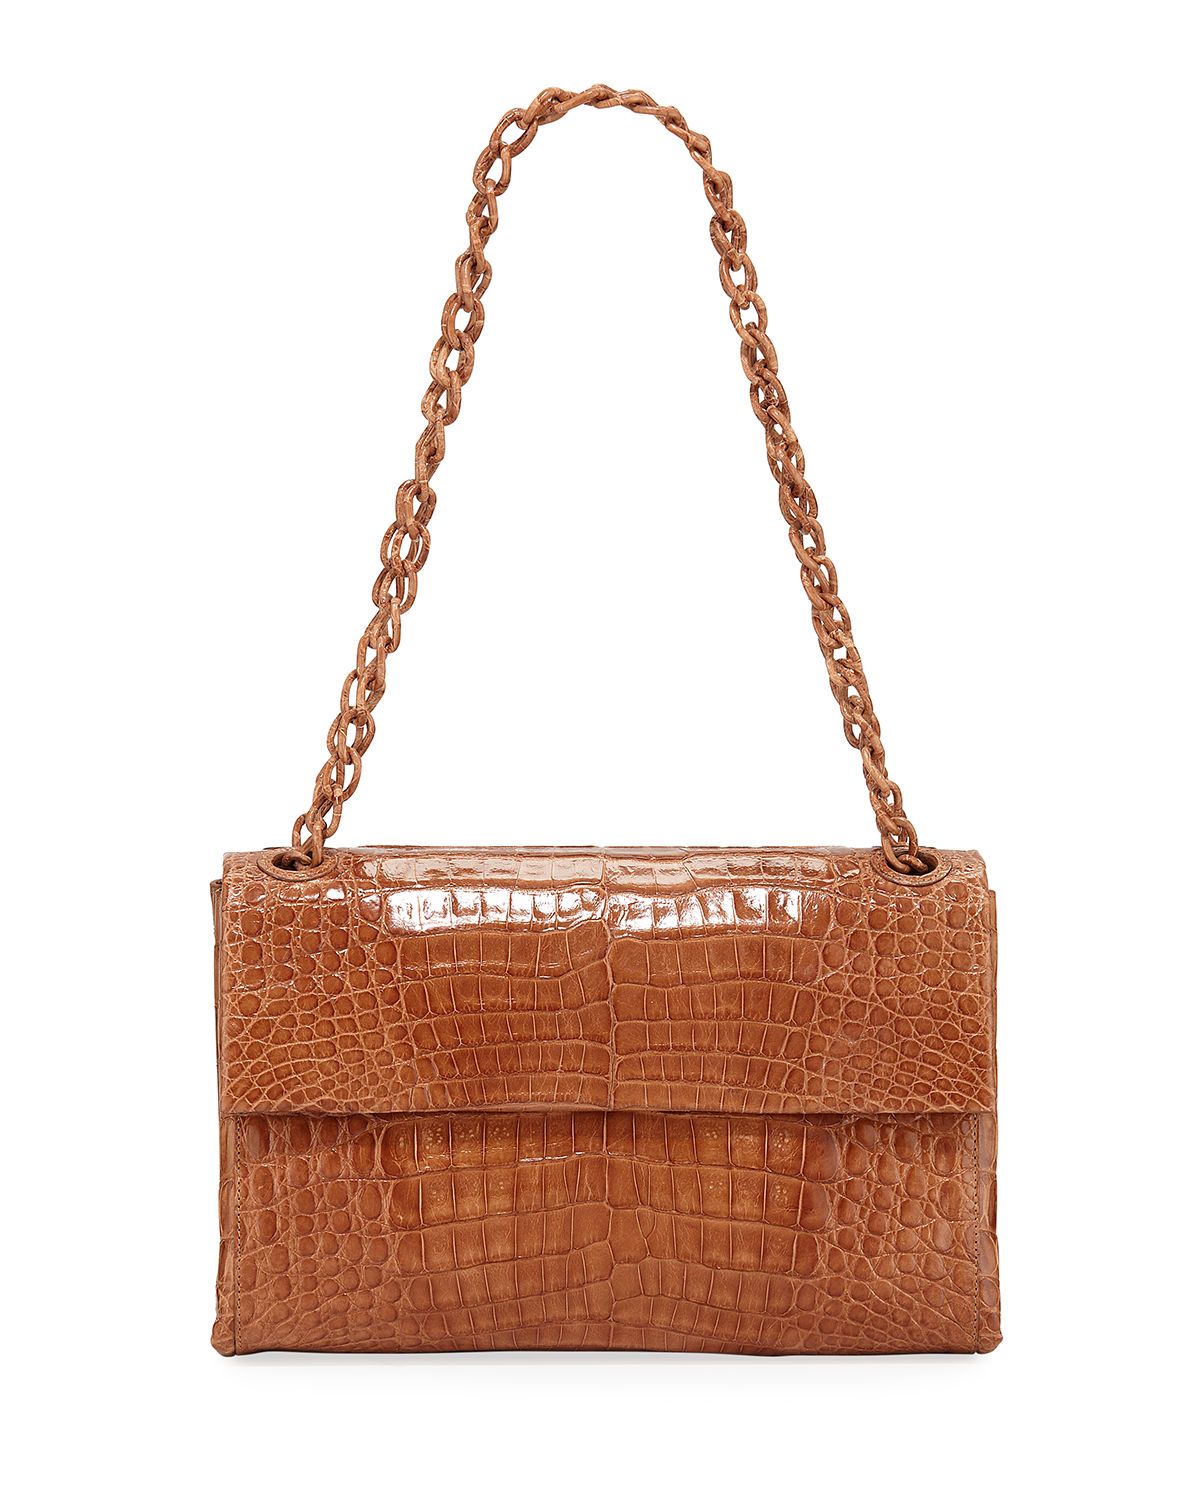 Nancy Gonzalez Madison Adjustable Chain Shoulder Bag In Camel